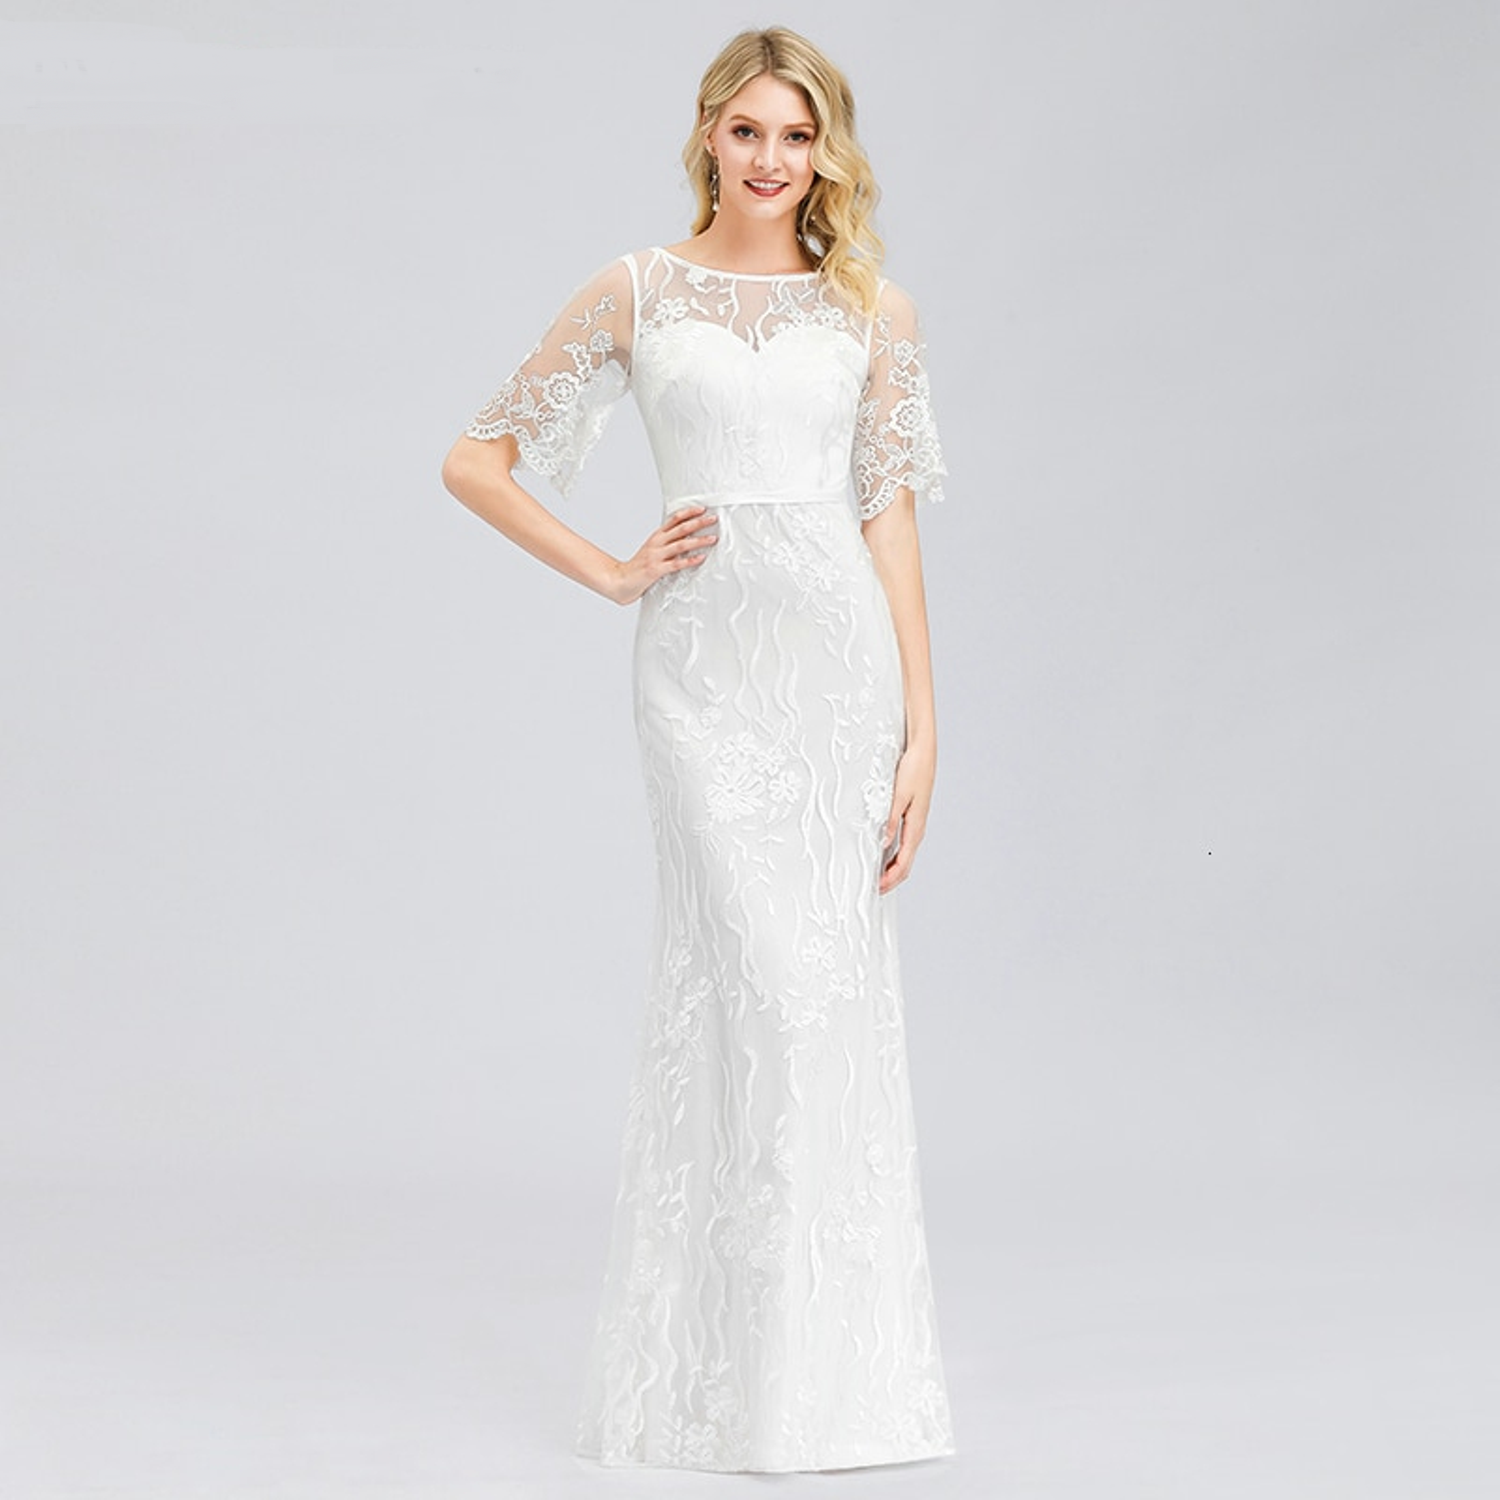 Mermaid wedding gown with flutter sleeves